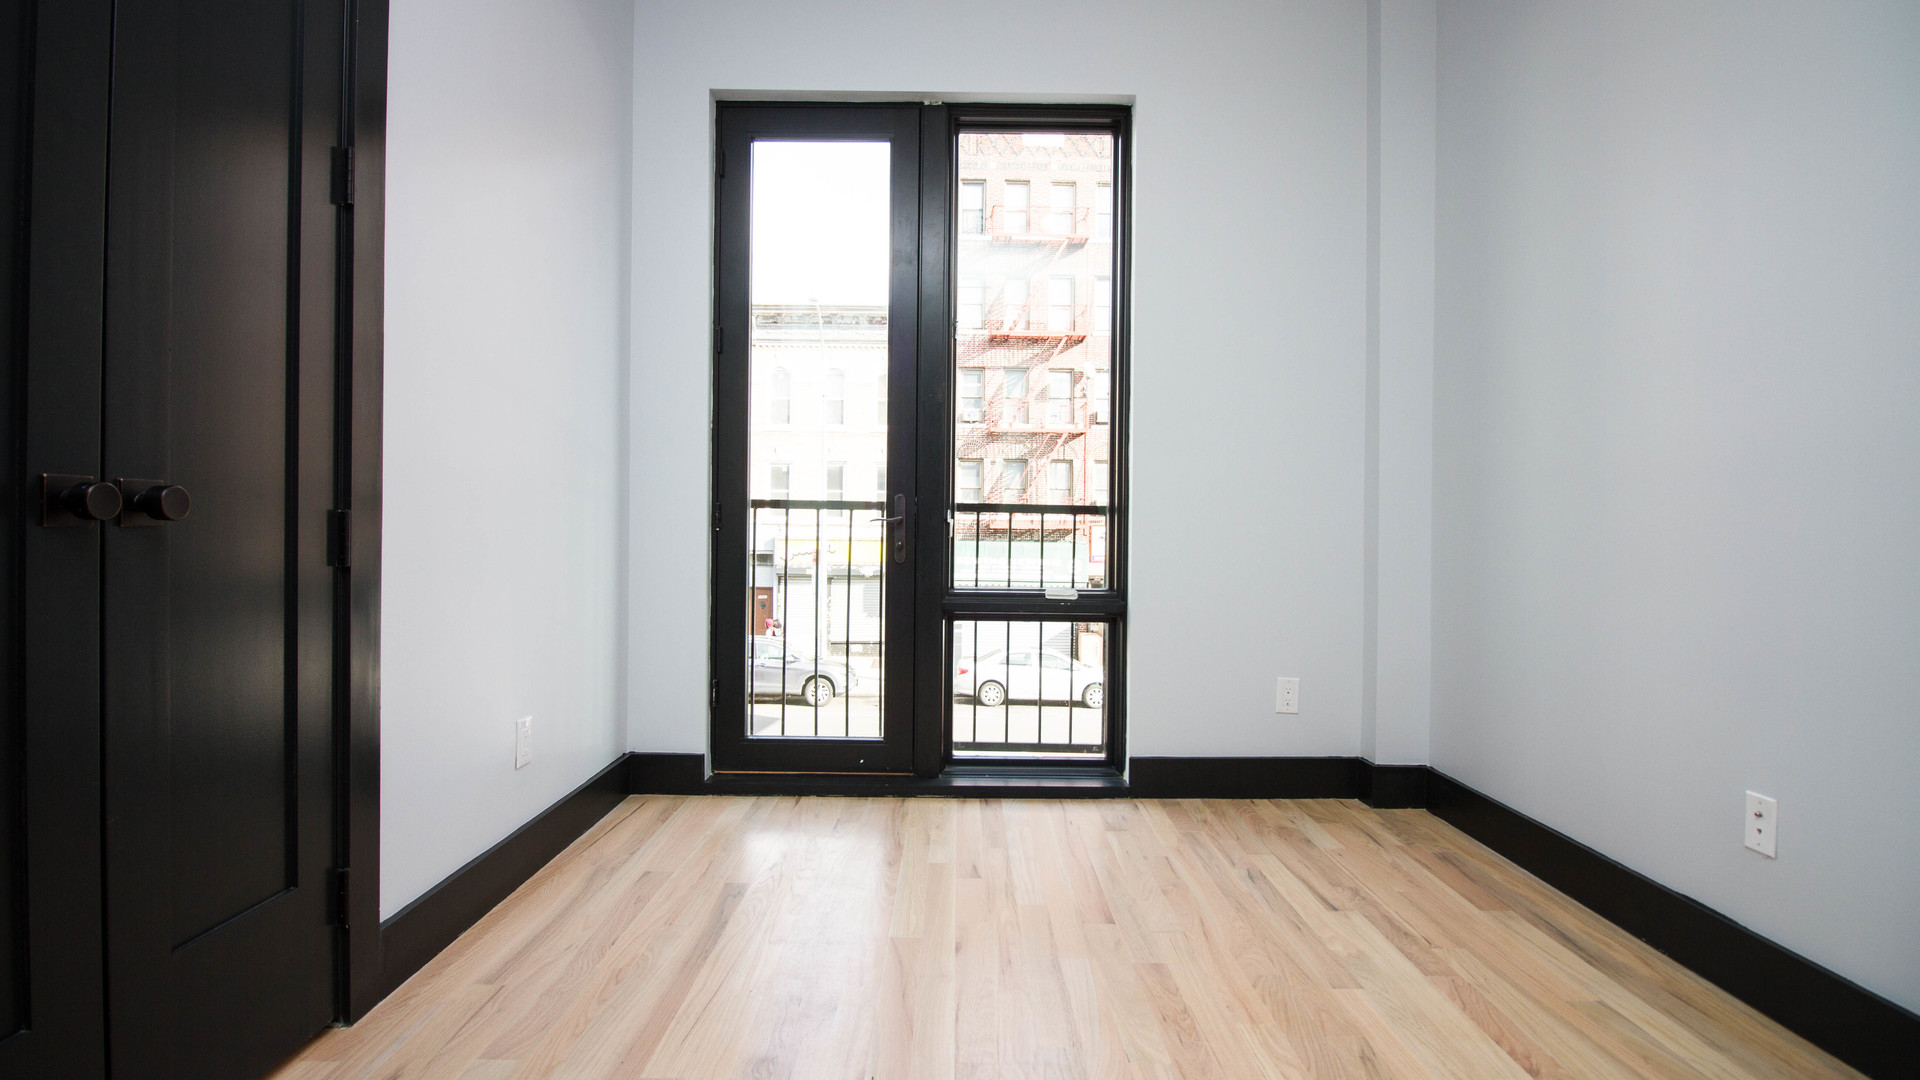 020 1544 nostrand ave 2f %2813 of 21%29